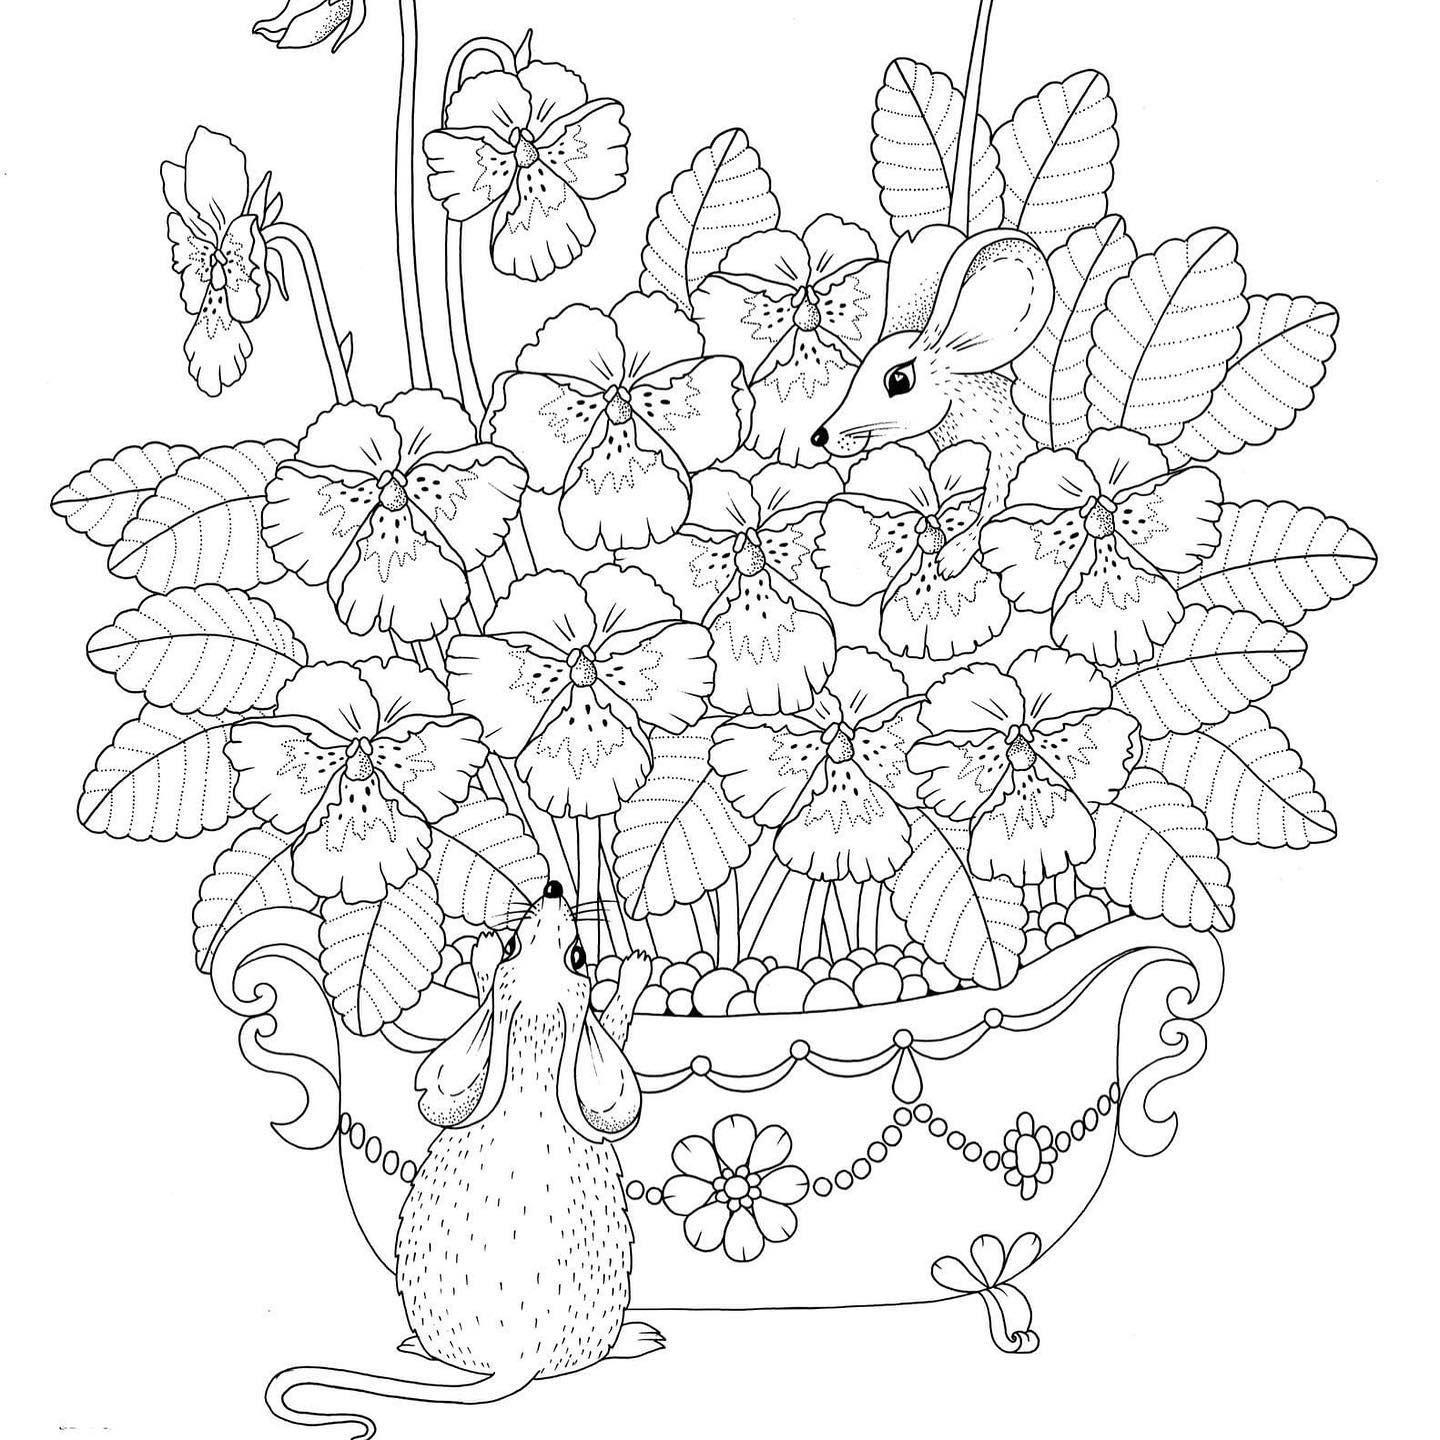 Friday Freebie Here Is A Free Coloring Page From My Coloring Book Flower Haiku Which Is Available At W Cute Coloring Pages Free Coloring Pages Coloring Pages